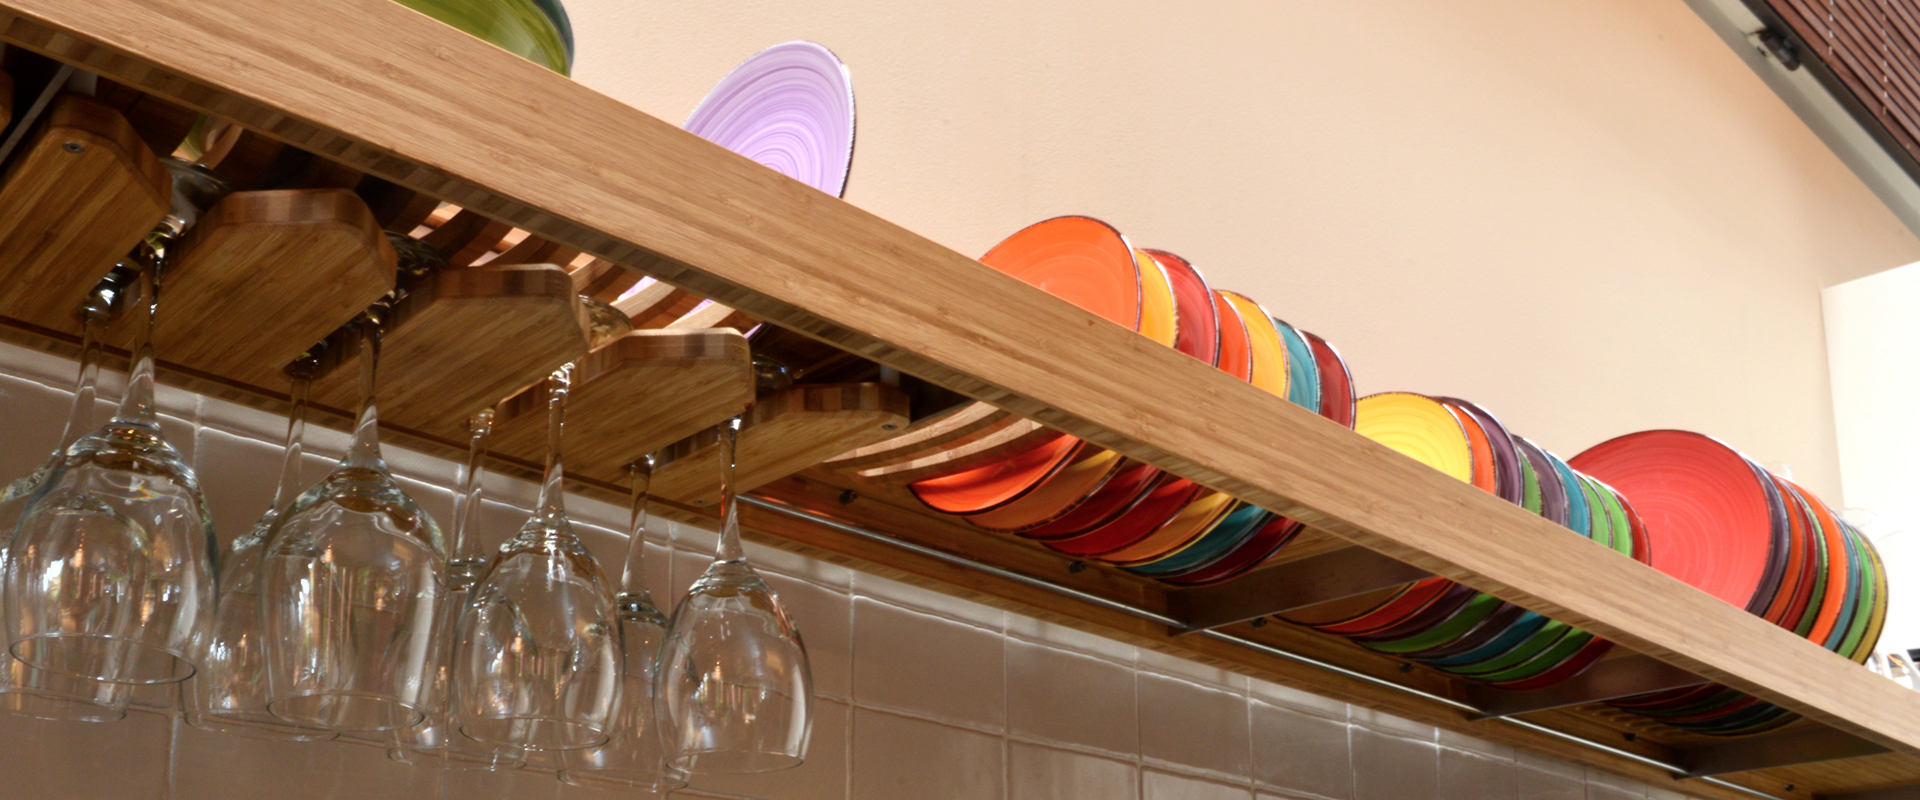 kitchen-shelf